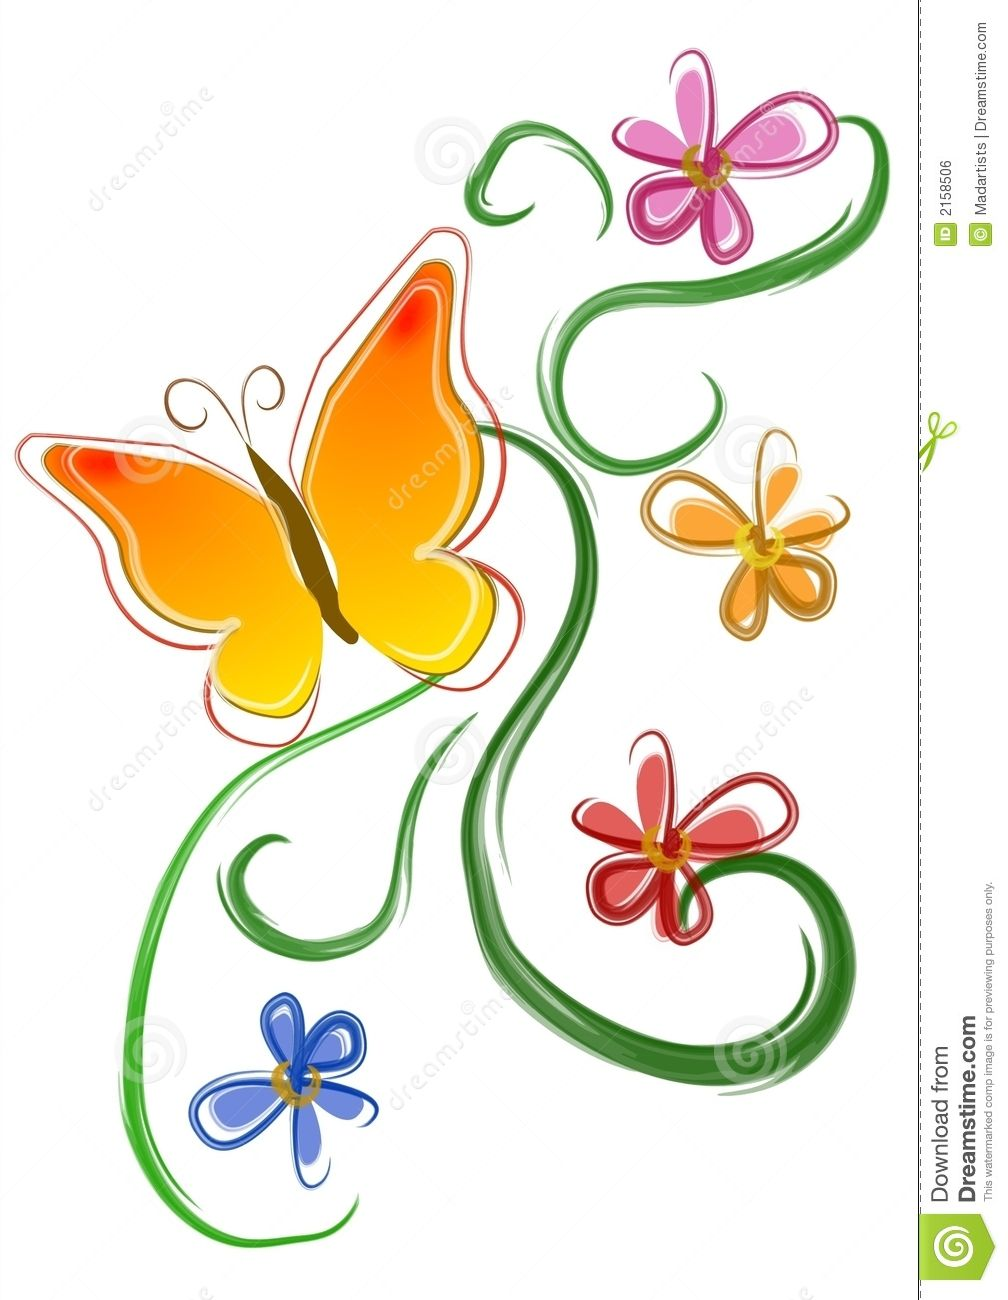 Free clipart of flowers and butterflies clipart library library Butterfly Flowers Clip Art 01 Royalty Free Stock Image - Image Could ... clipart library library